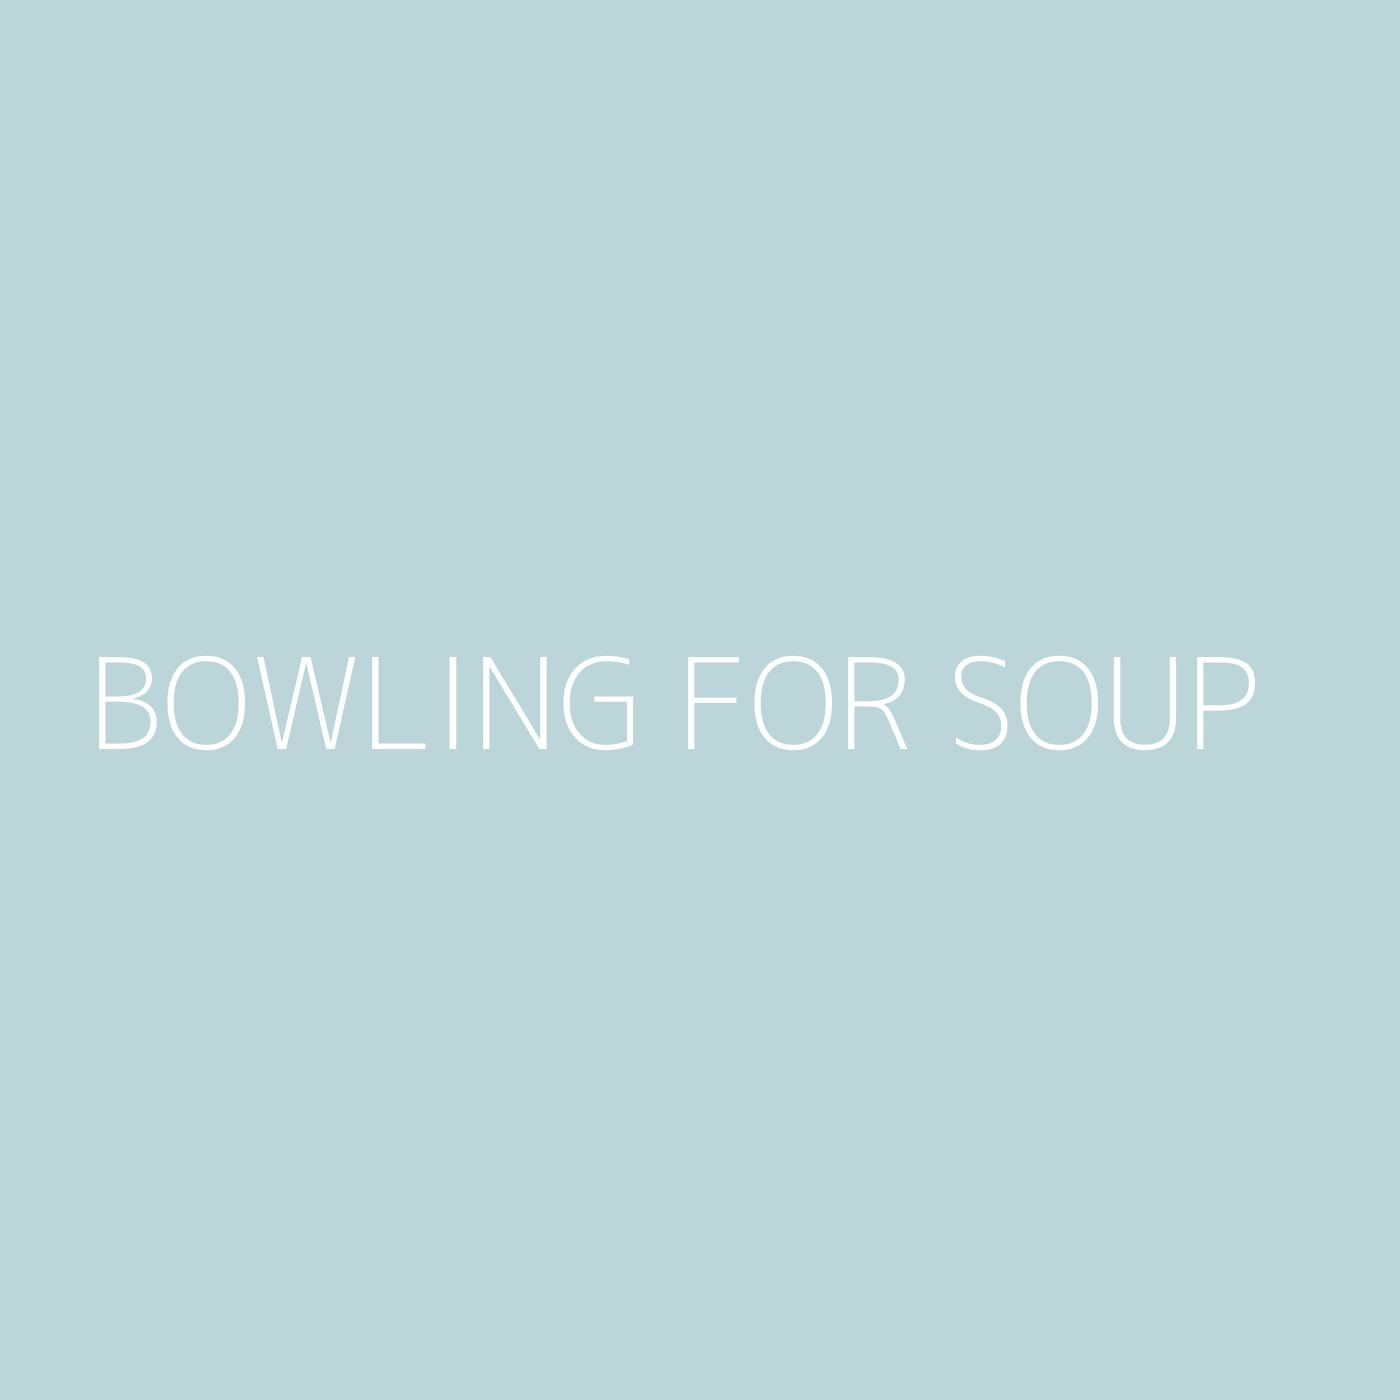 Bowling For Soup Playlist Artwork